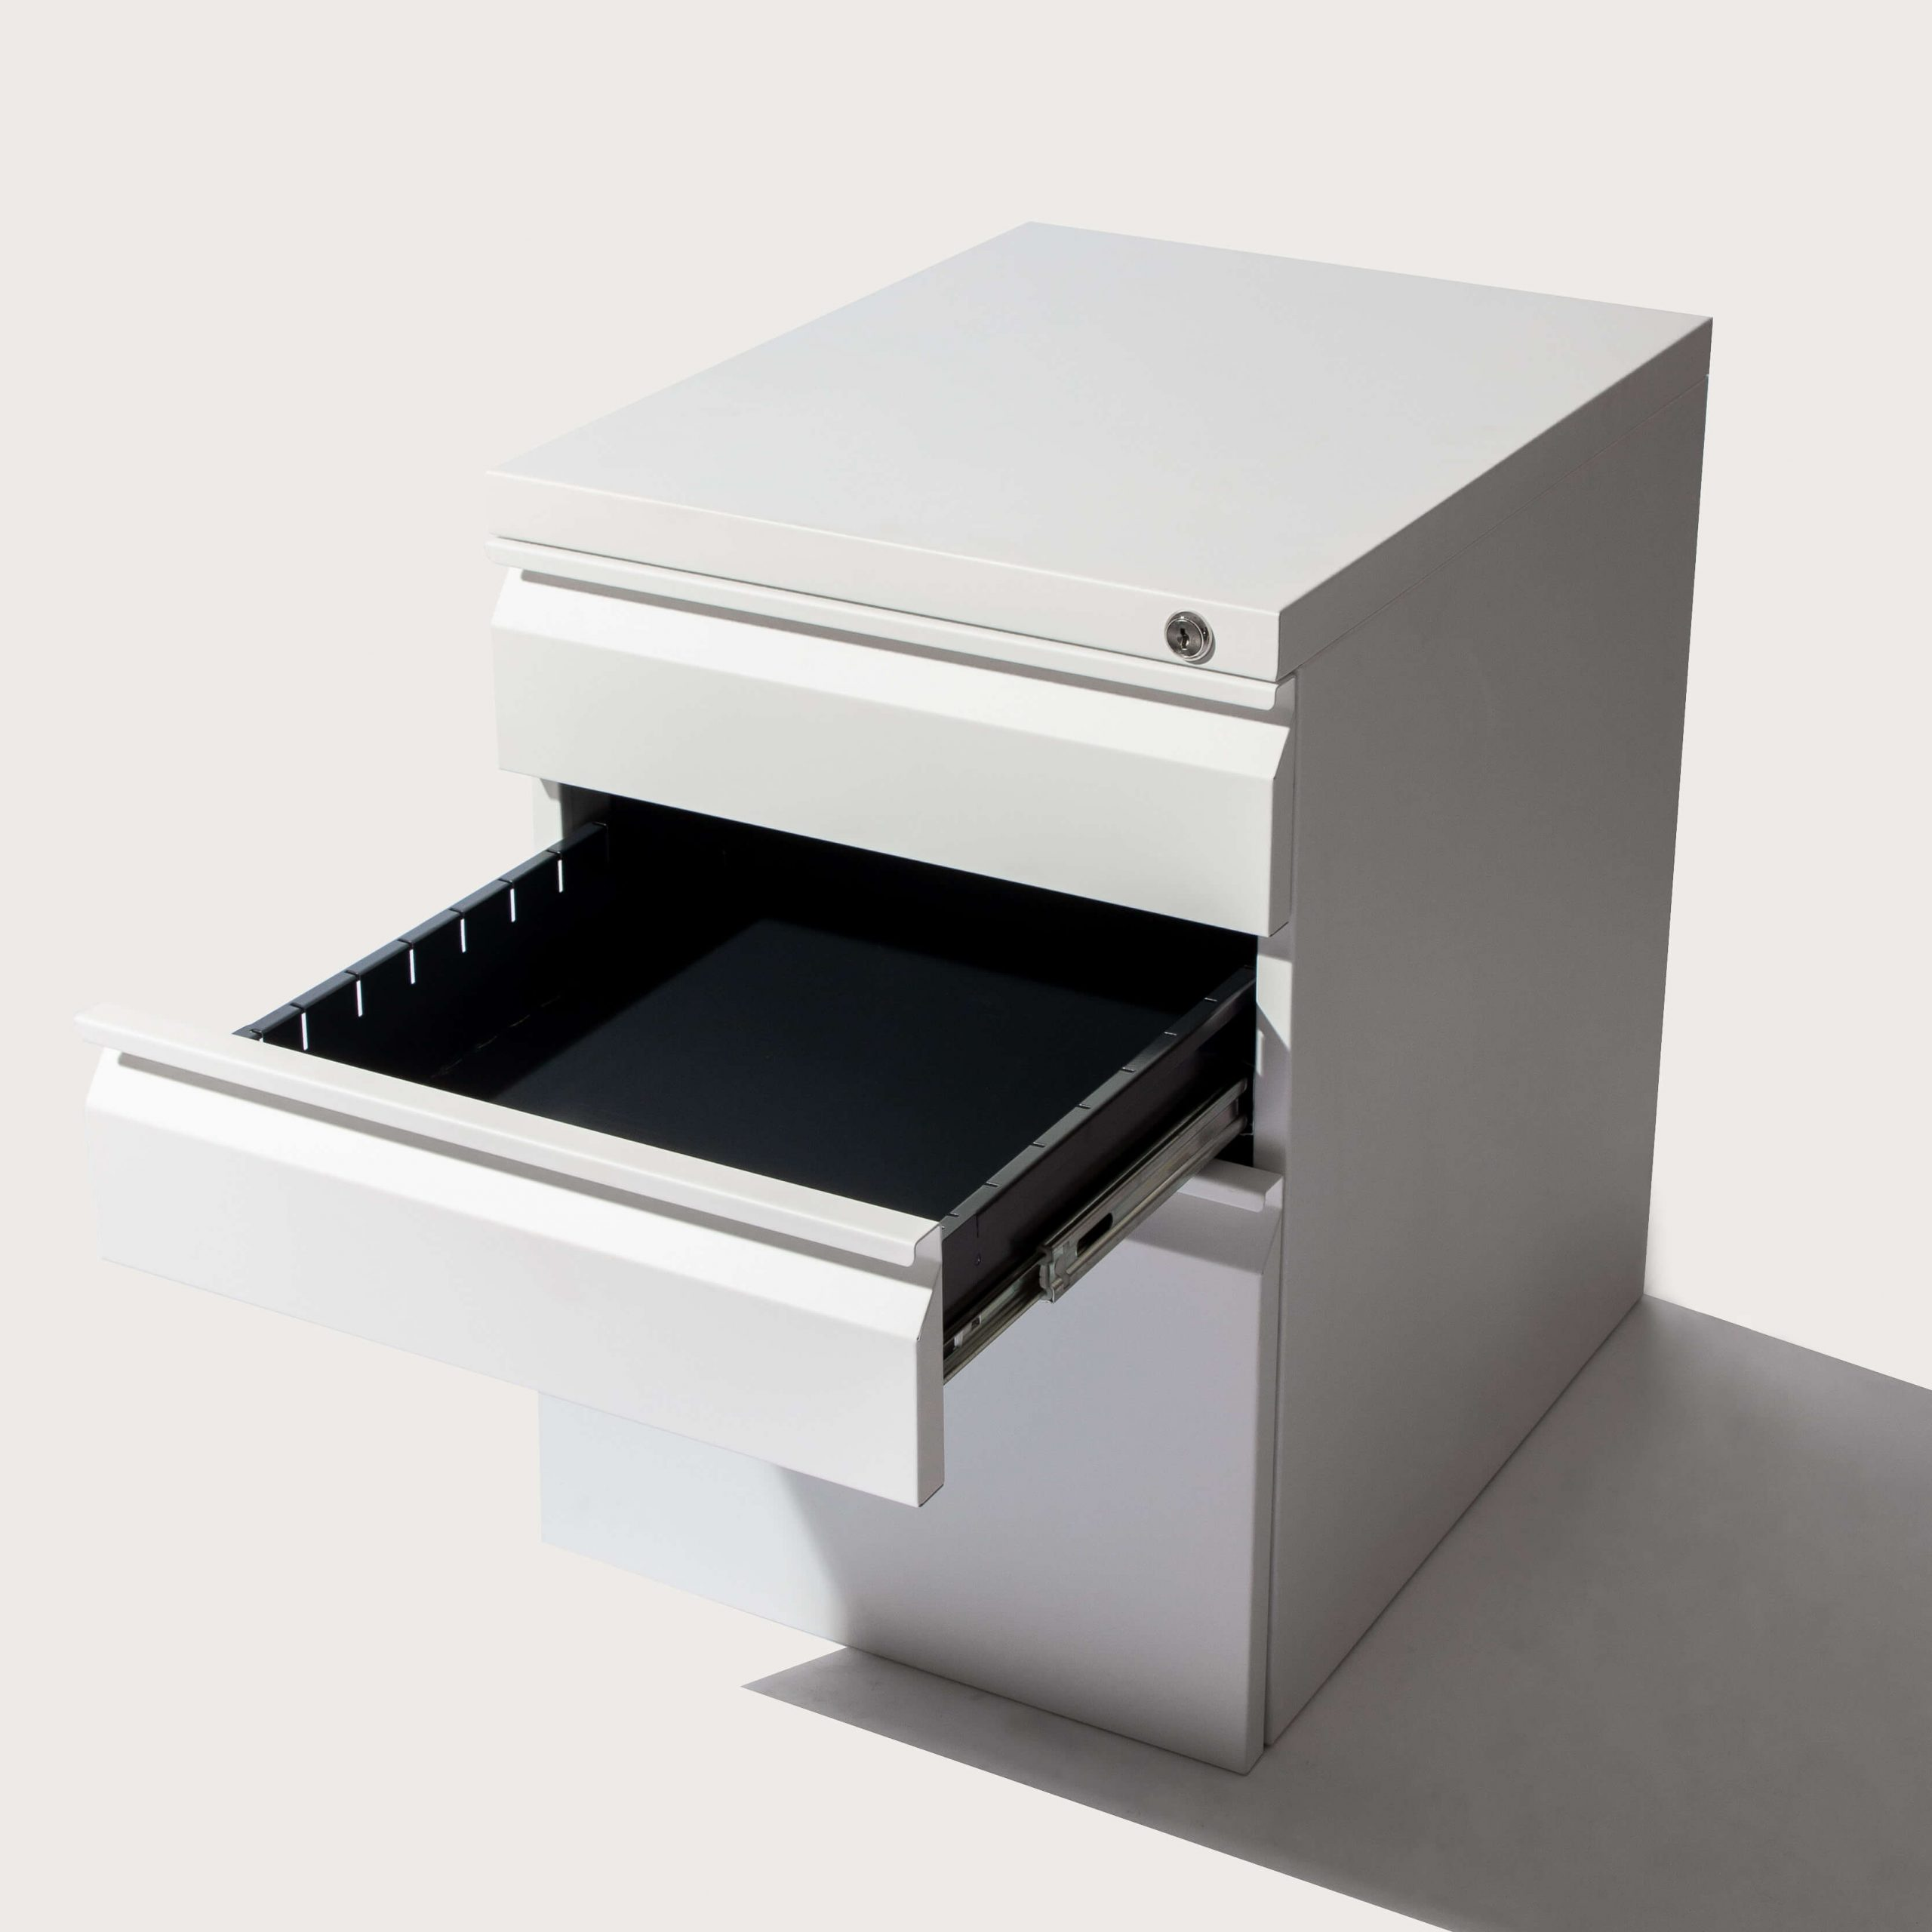 open middle drawer - white pedestal